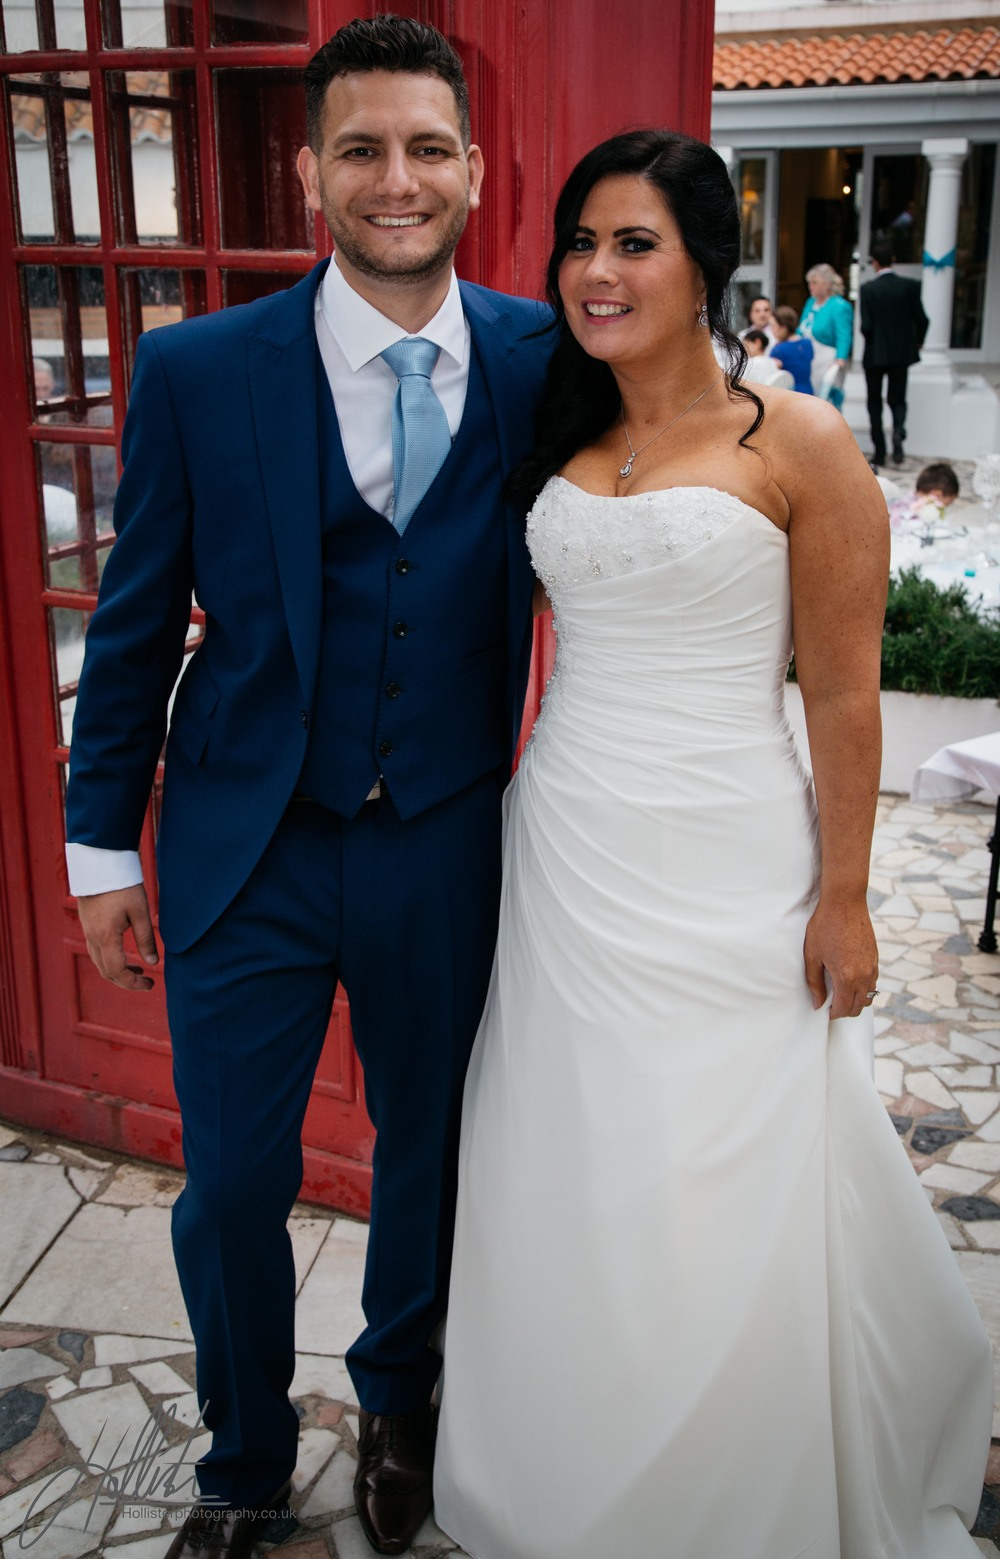 Stu and Firons Gibraltan Wedding june 6th 2015  WATERMARKED-40.jpg